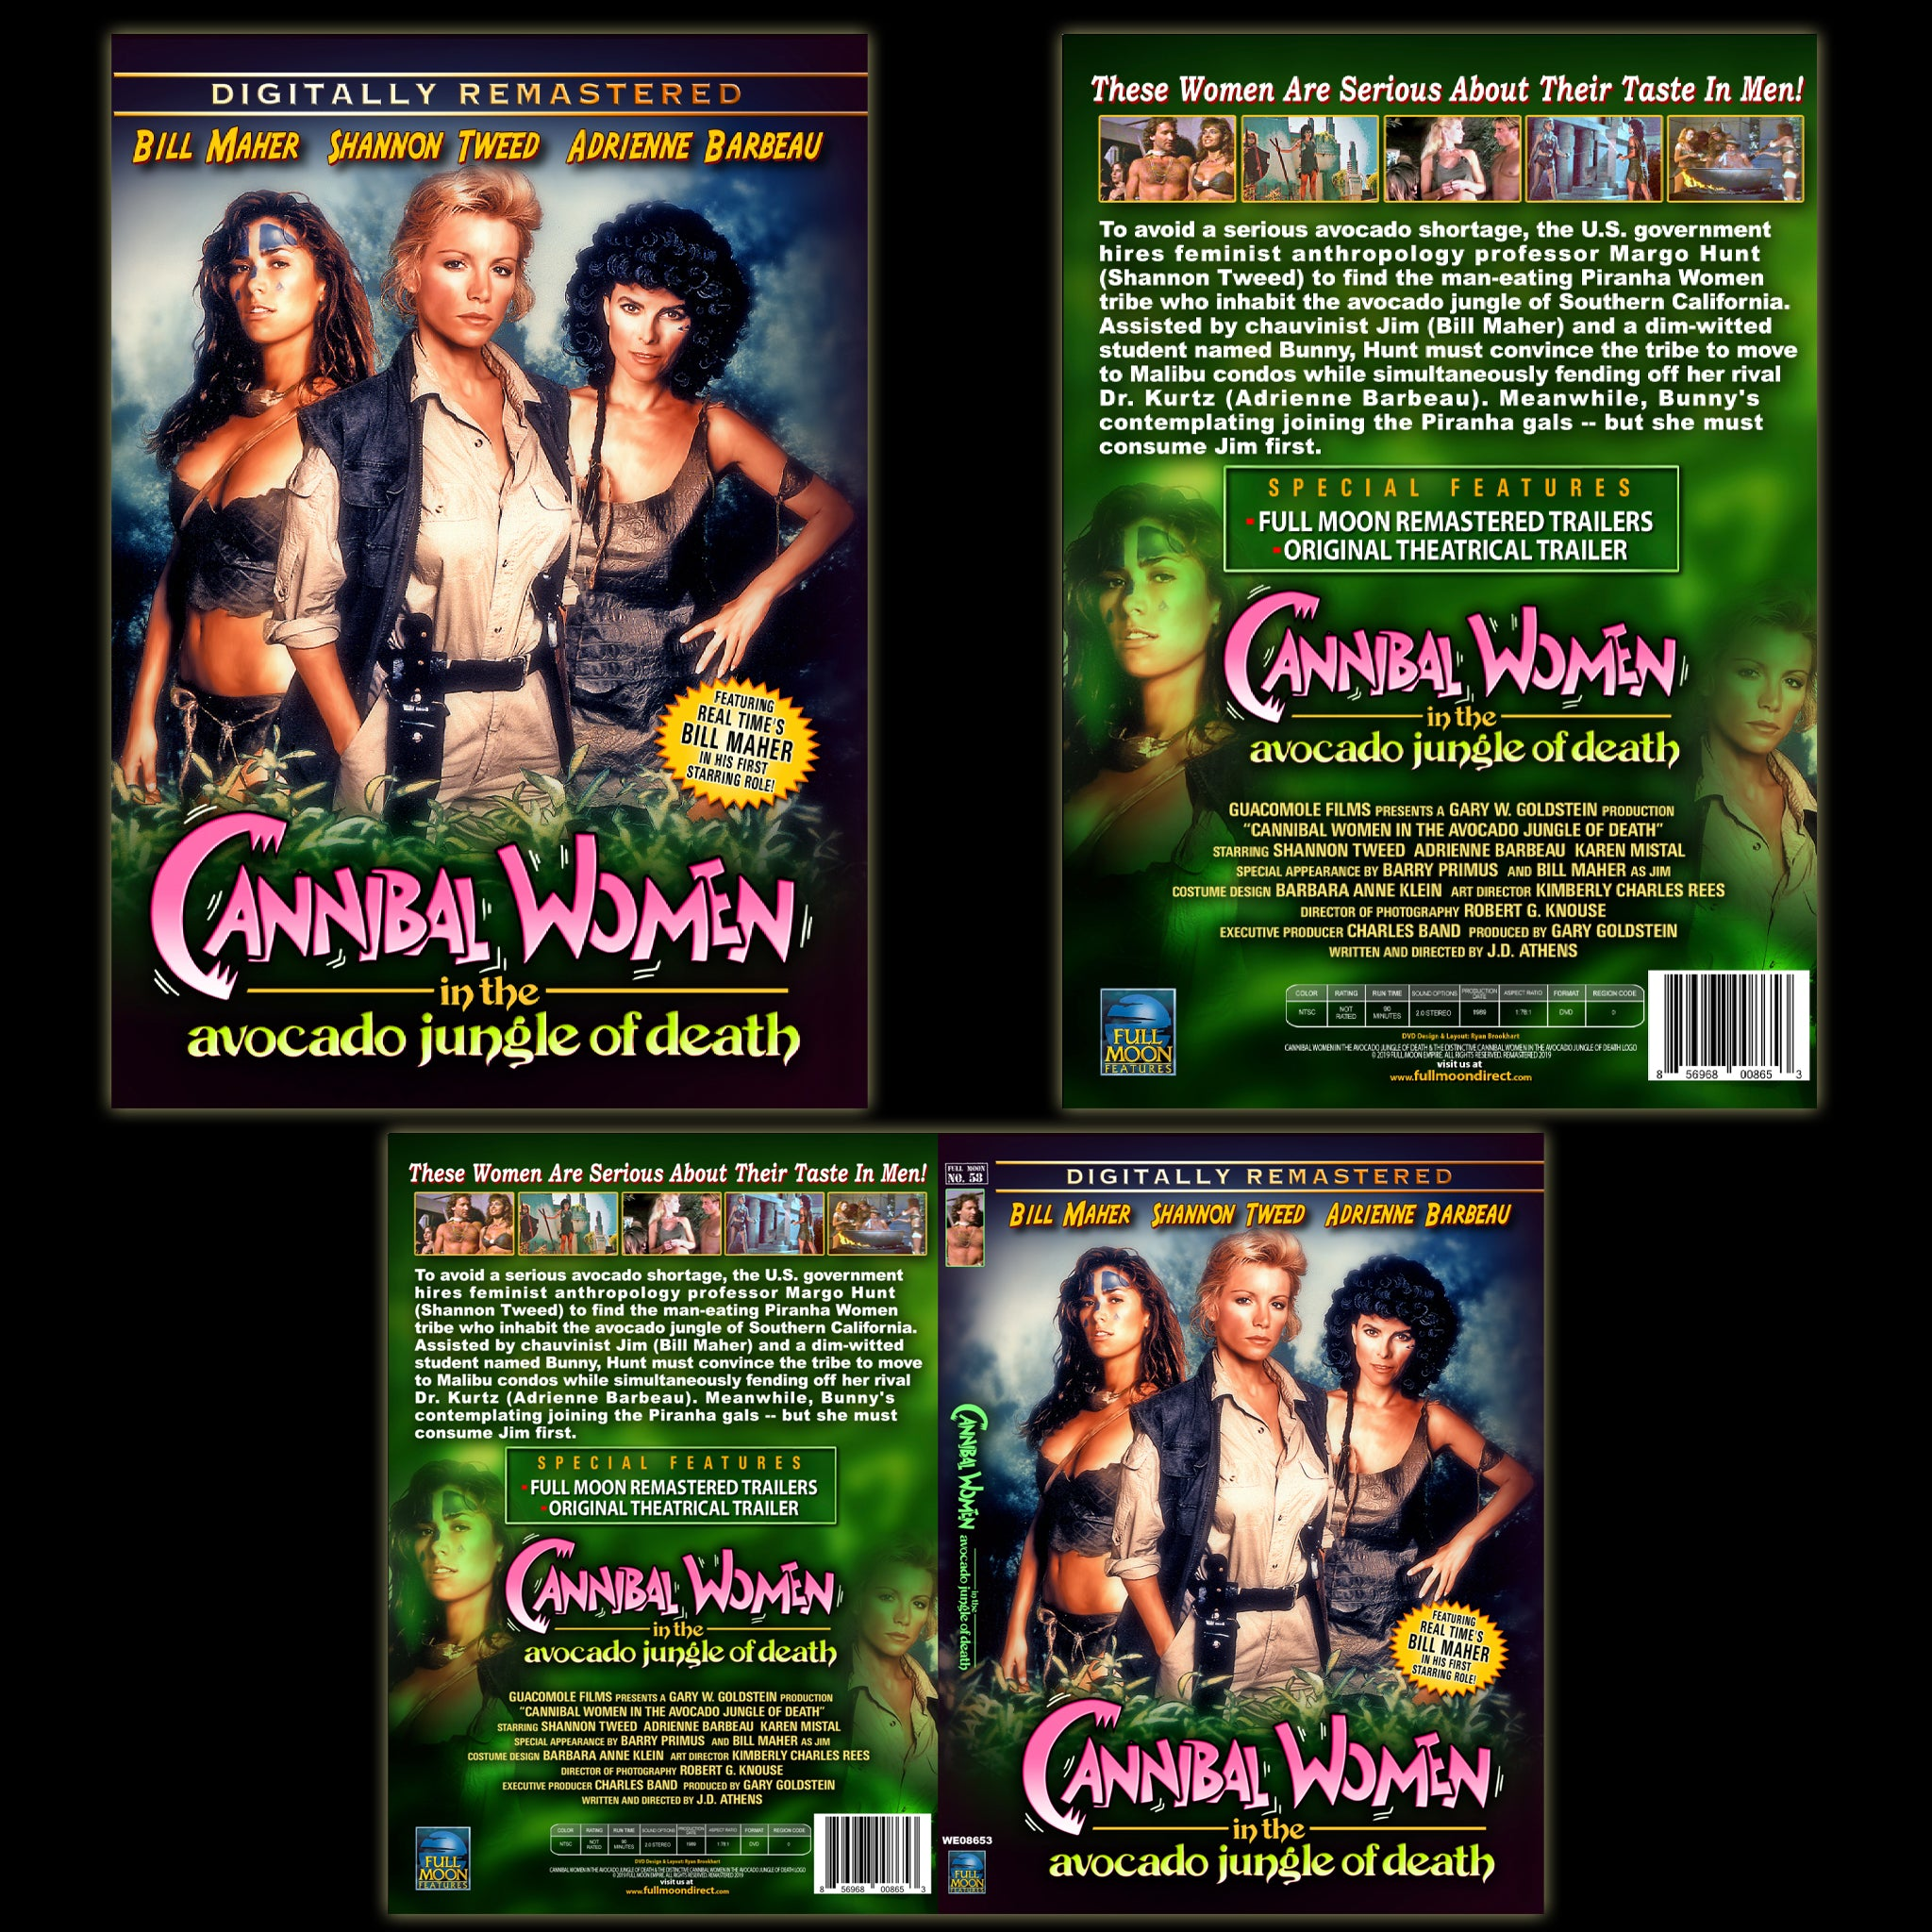 Cannibal Women in the Avocado Jungle of Death [Remastered] DVD